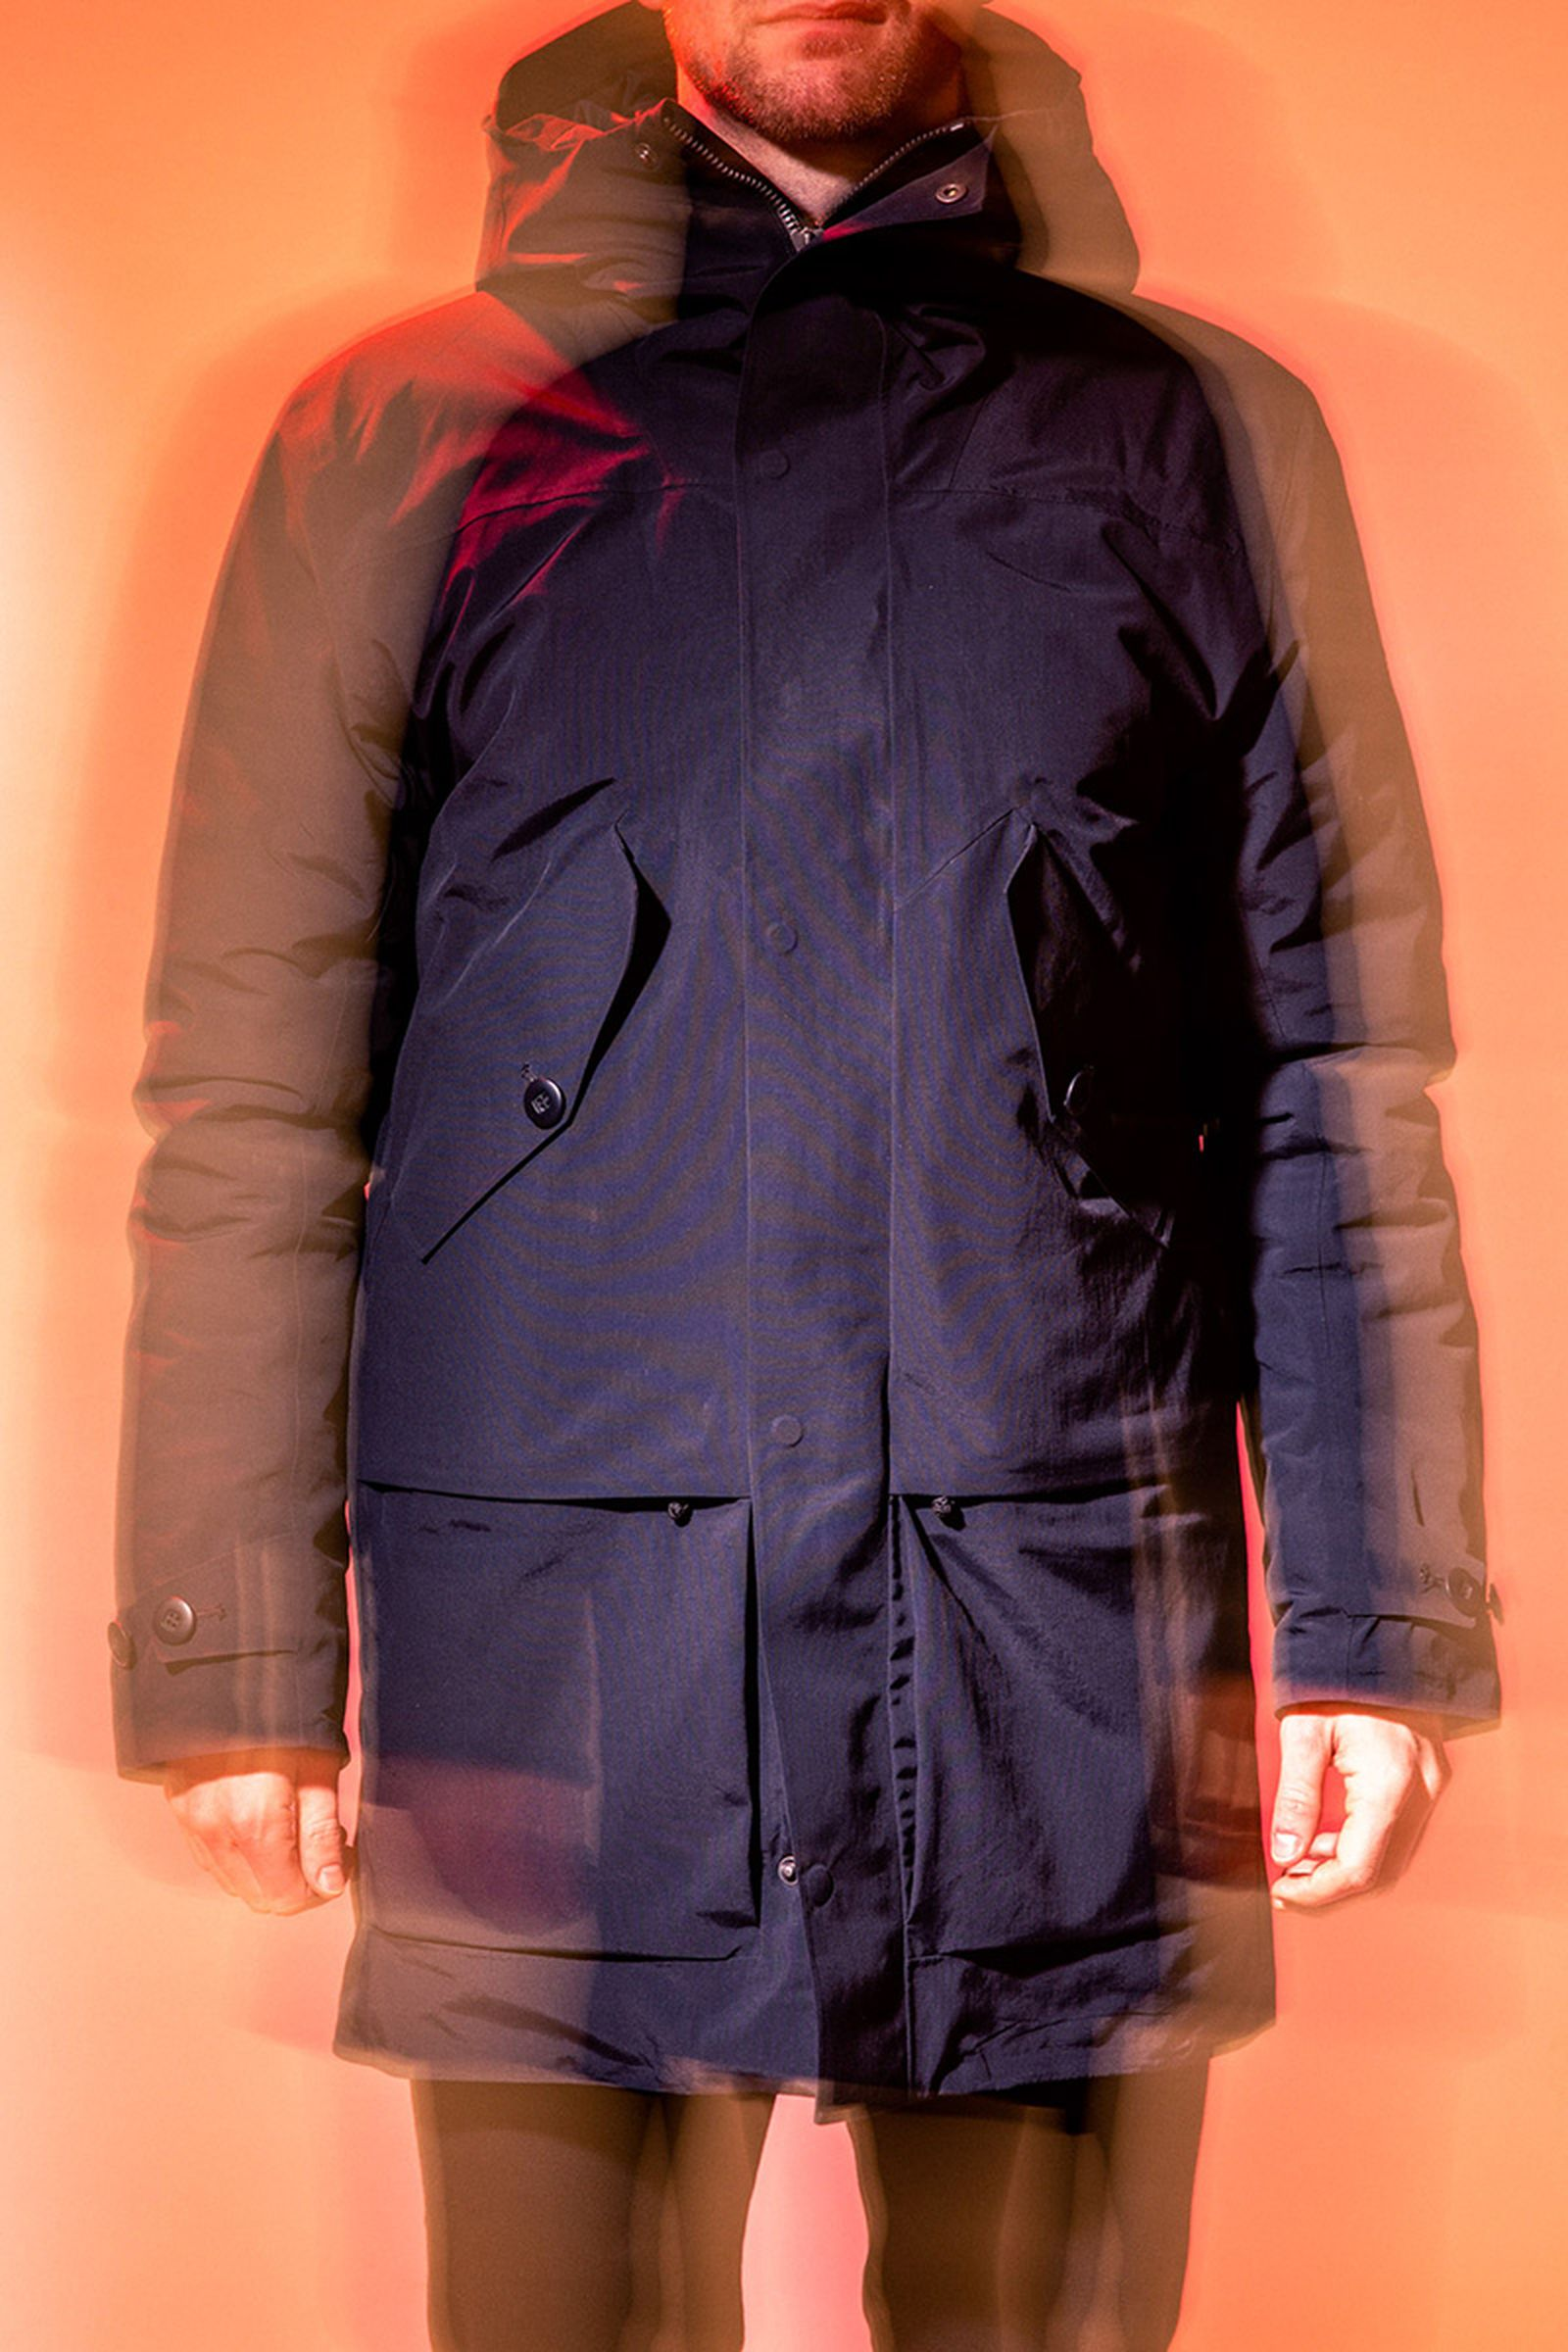 wear-tested-last-winter-coat-youll-ever-buy-03